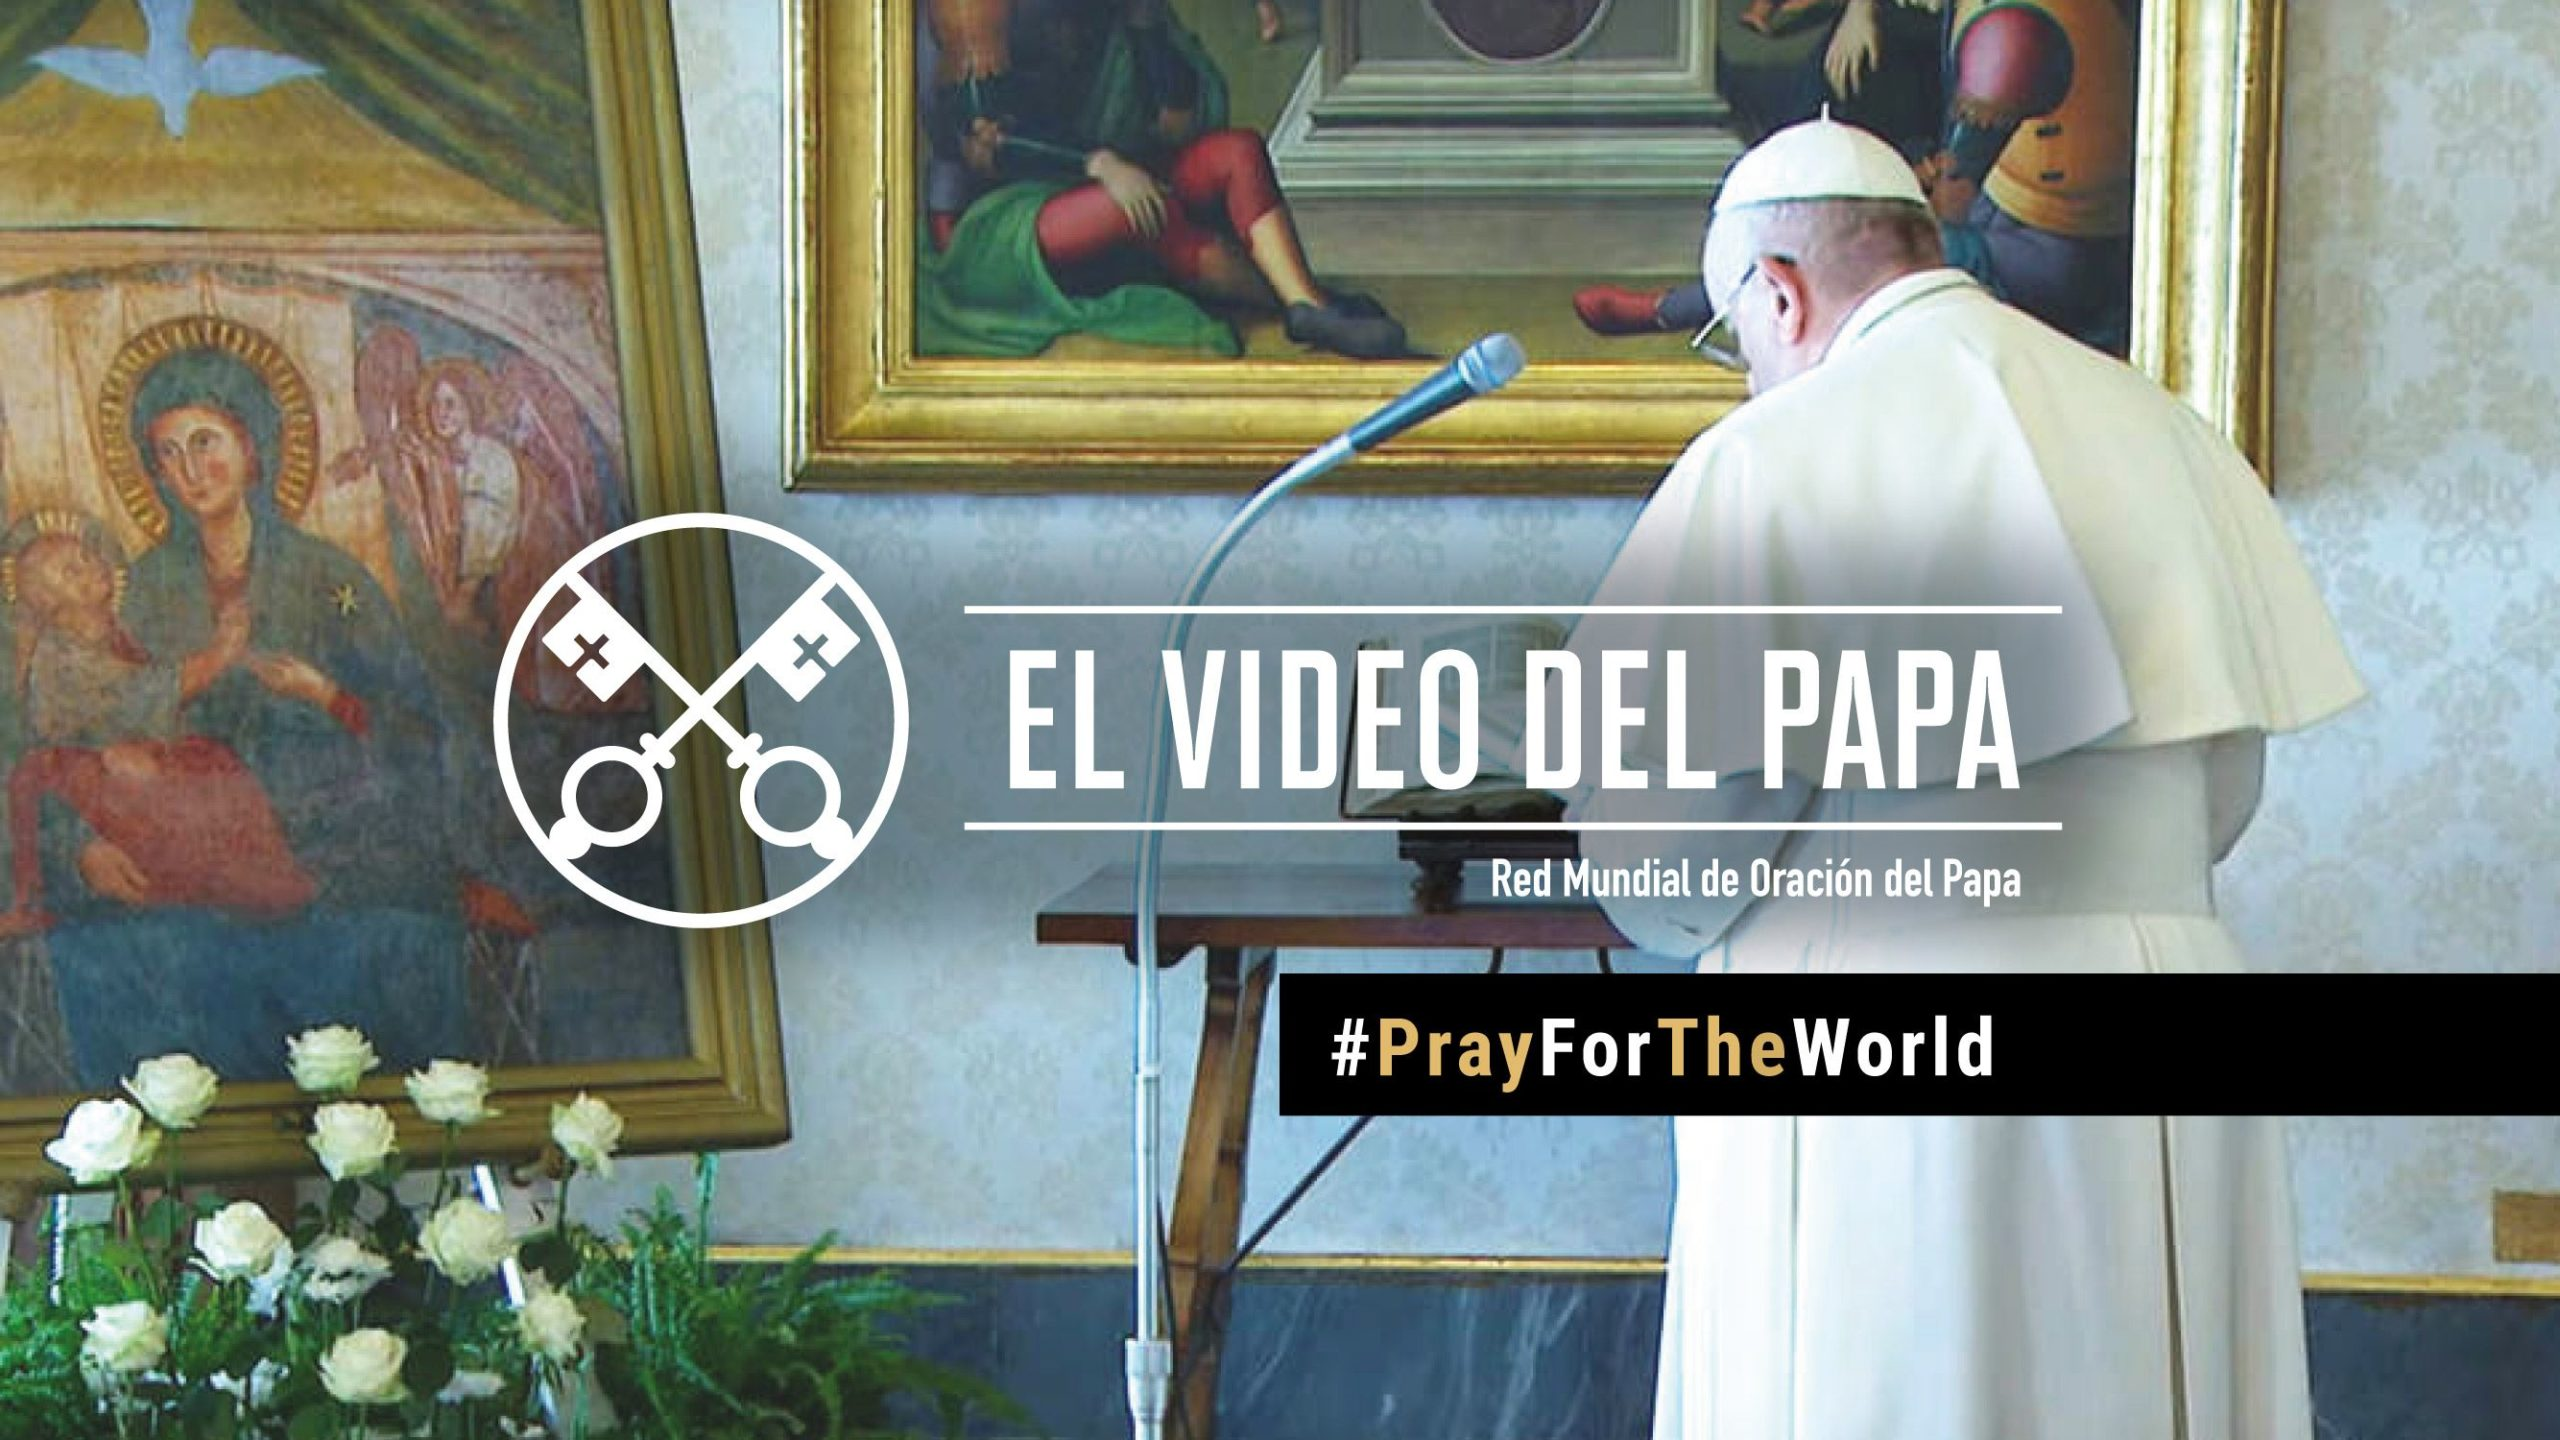 Official-Image-TPV-PFTW-2020-ES-El-Video-del-Papa-PrayForTheWorld-scaled